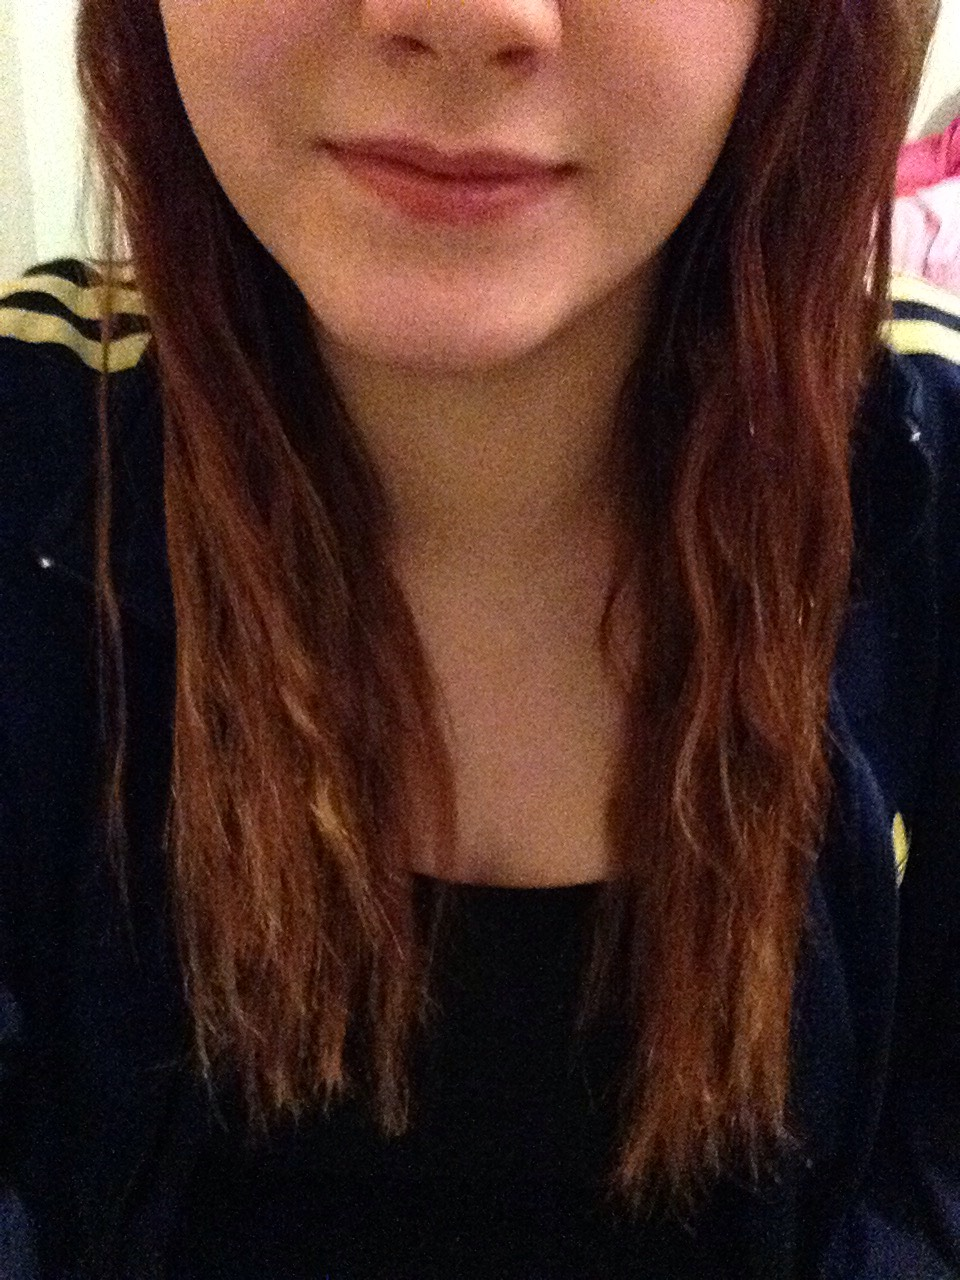 Hairspray it and now you are left with beautiful beach waves👌👌